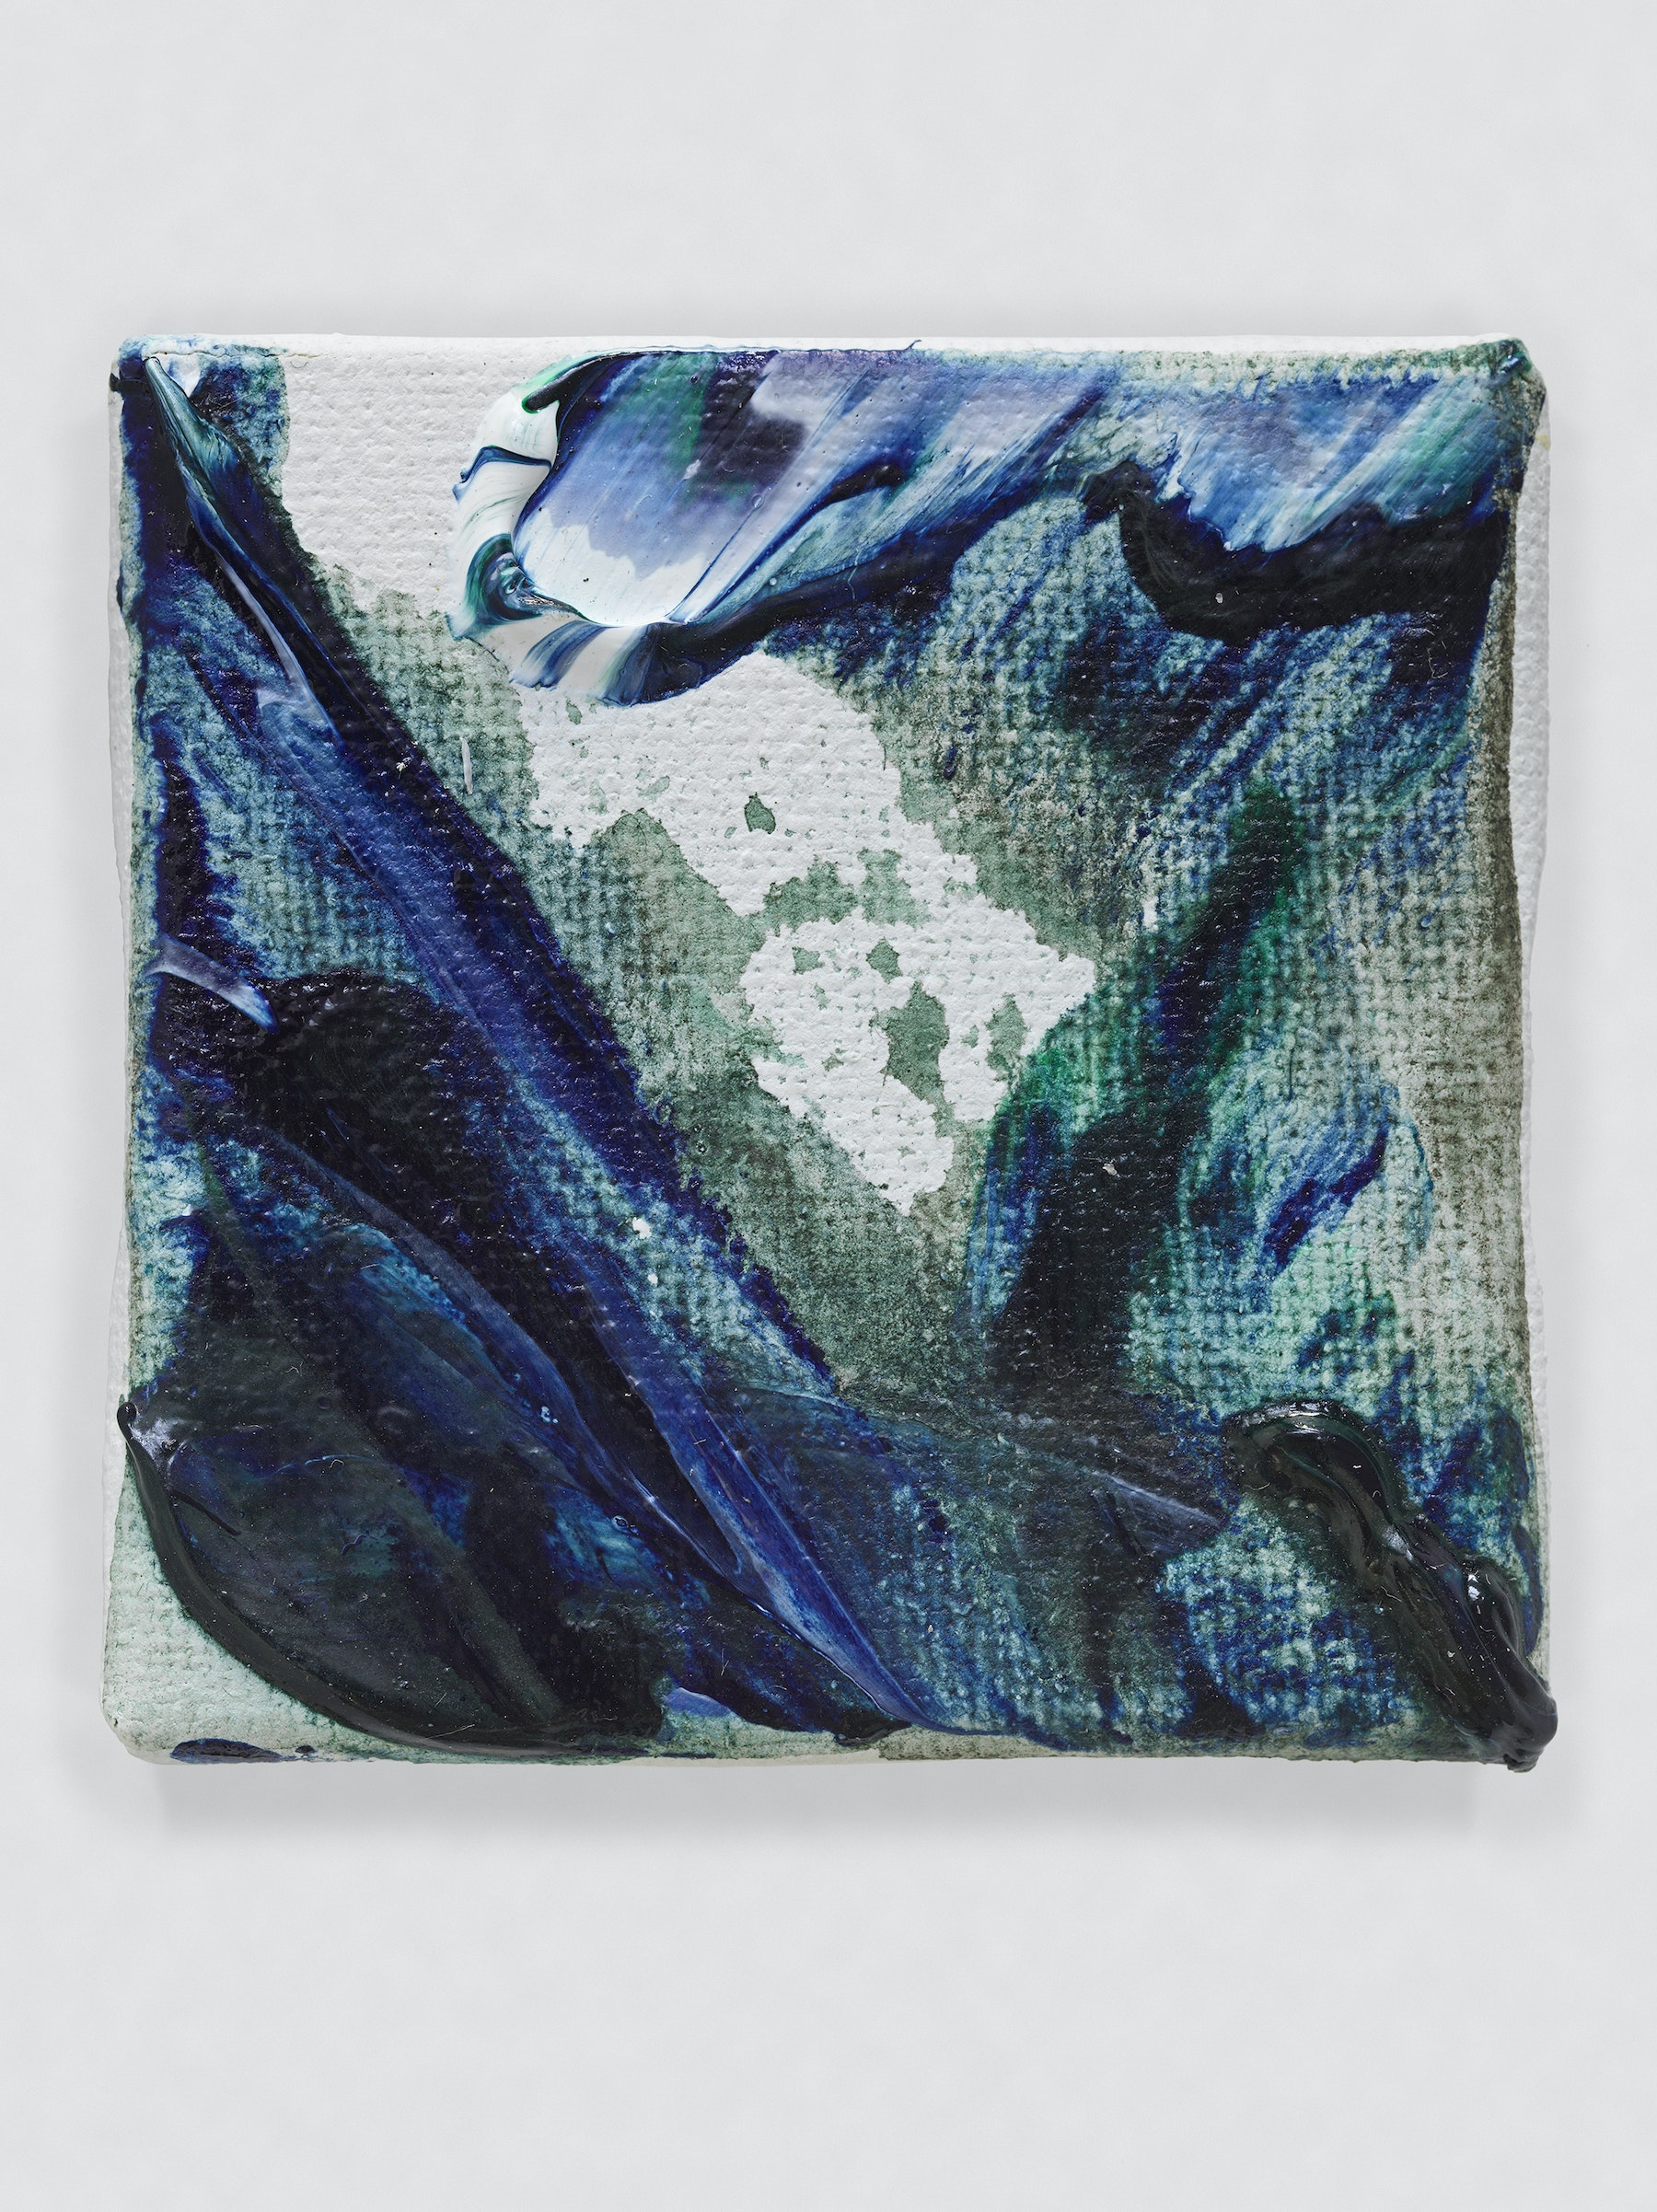 """Louise Fishman """"UNTITLED,"""" 2014 Oil on canvas 2 x 2"""" [HxW] (5.08 x 5.08 cm) Inventory #FIS153 Courtesy of the artist and Vielmetter Los Angeles Photo credit: Genevieve Hanson Signed and dated on verso"""